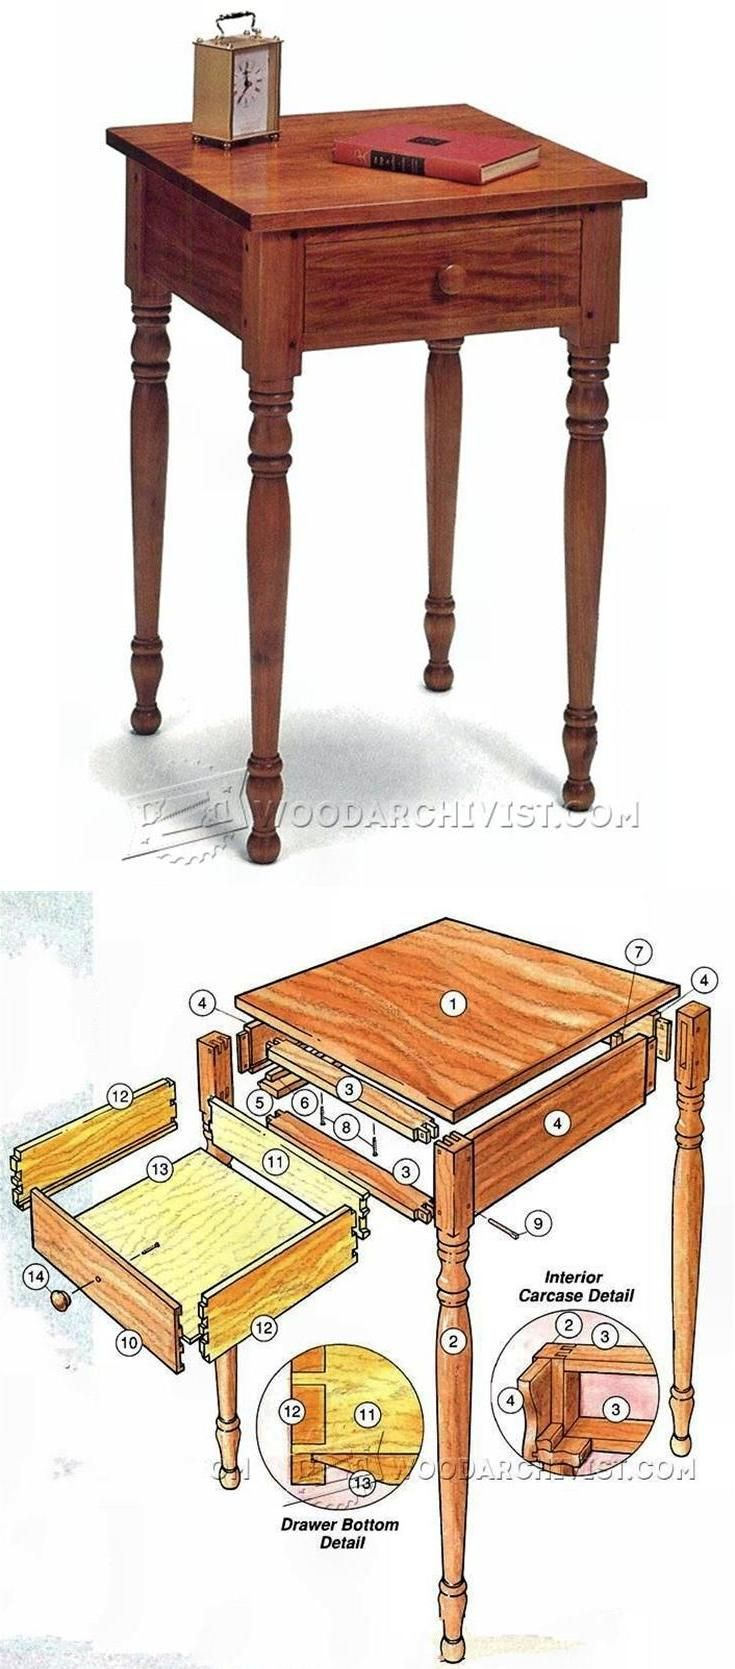 Bedside Table Plans - Furniture Plans and Projects | WoodArchivist.com